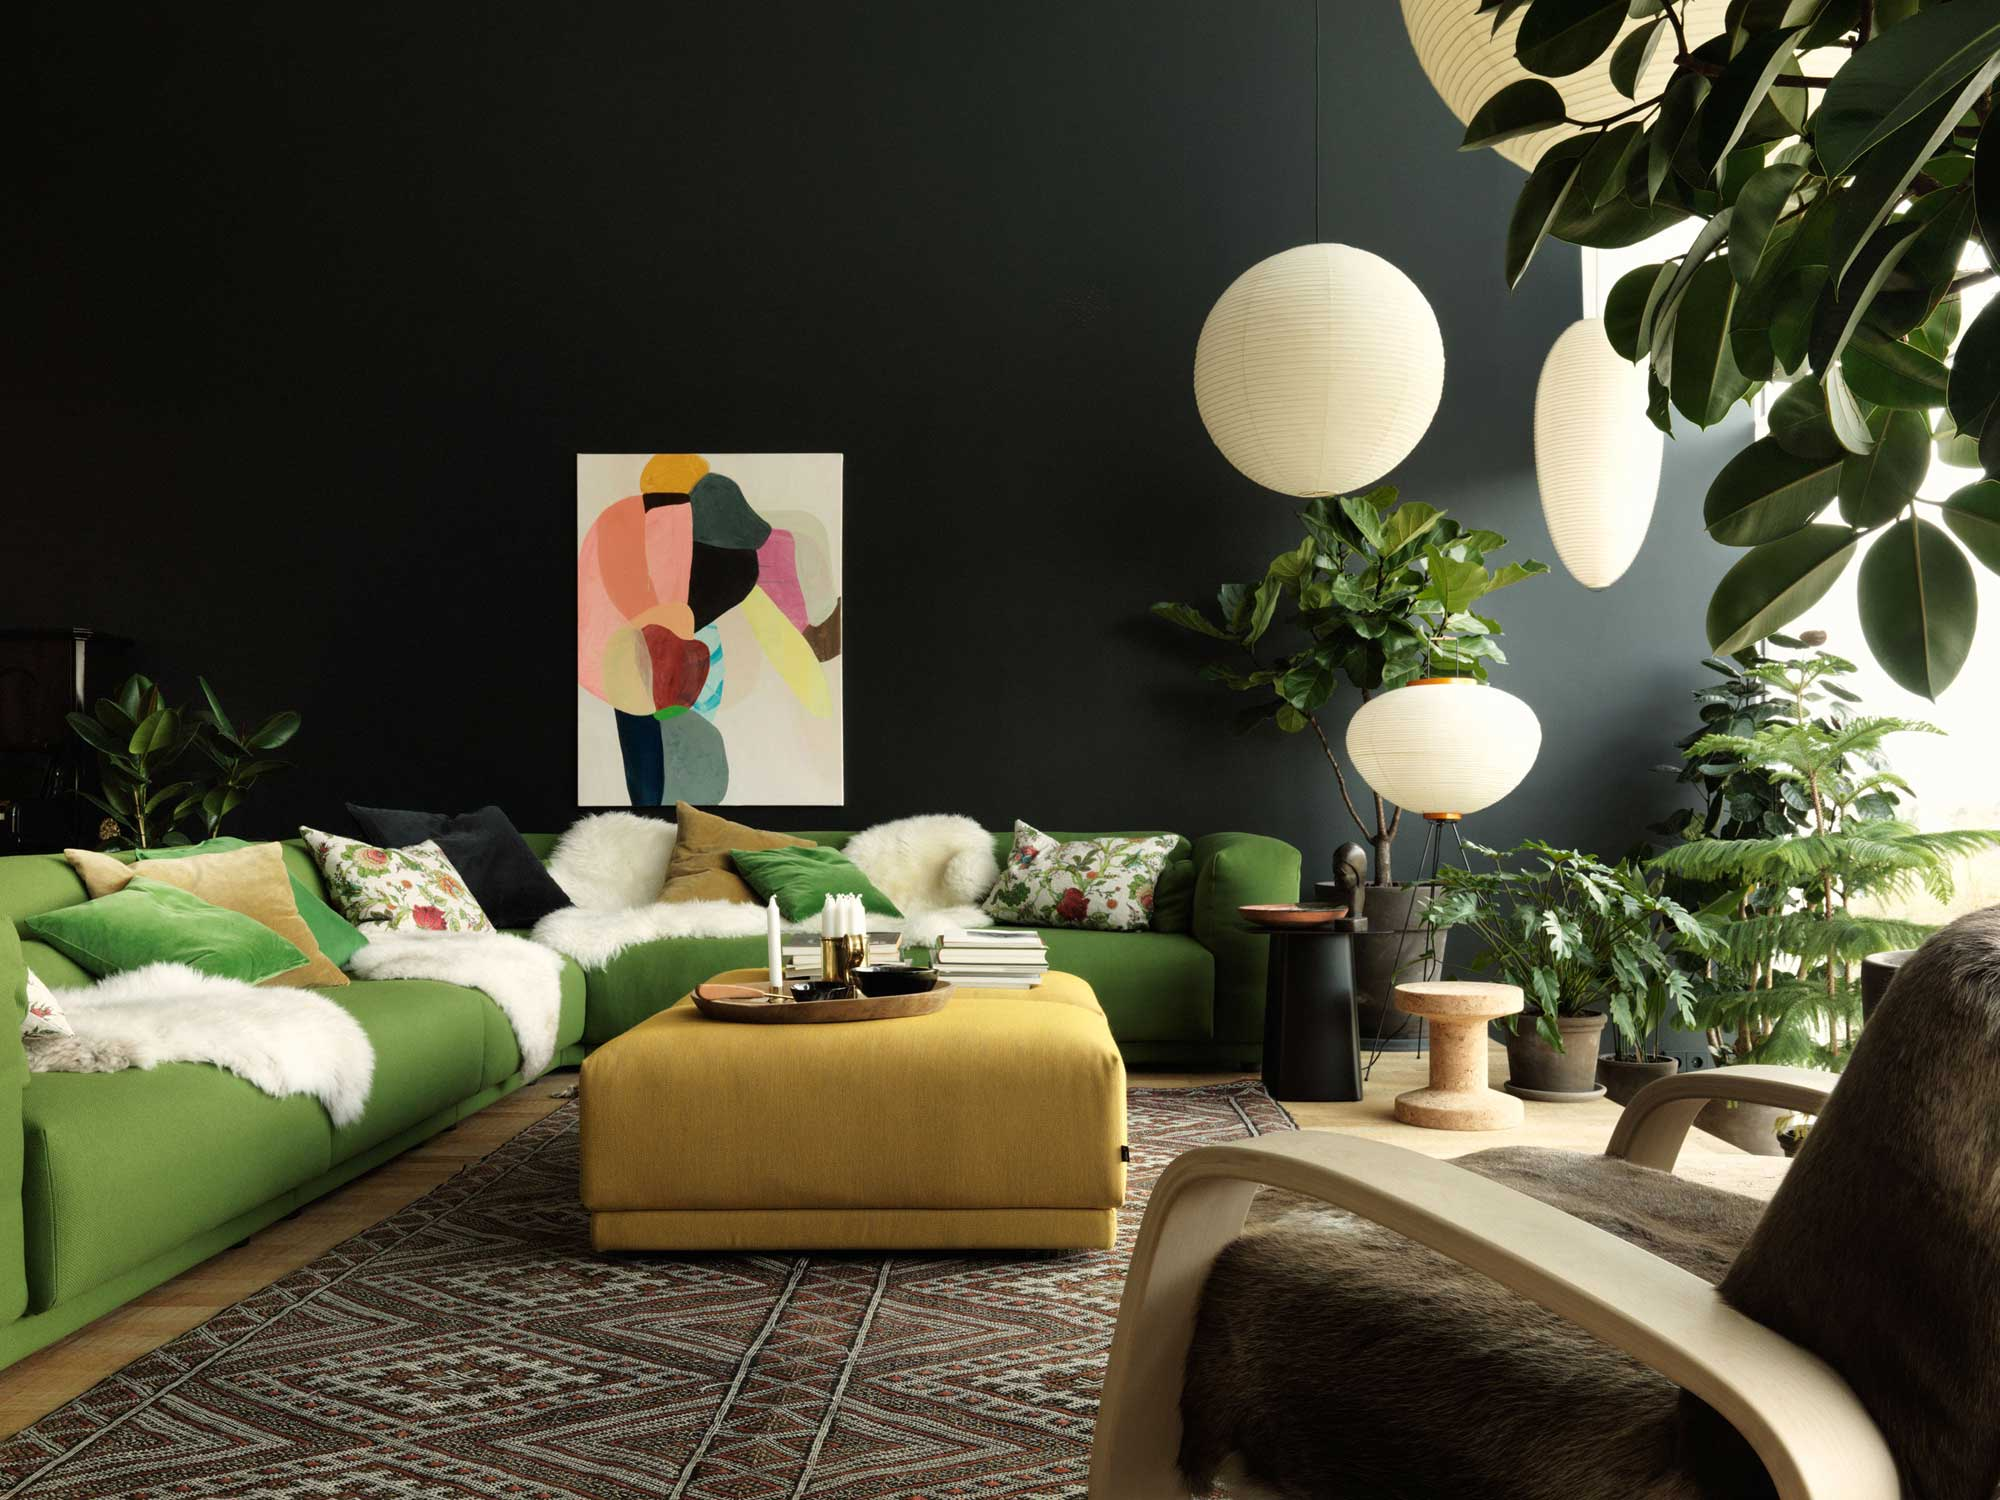 One of the stunning spaces designed by Ilse Crawford: green on black, a match made in heaven ( Photography: Studio Ilse)